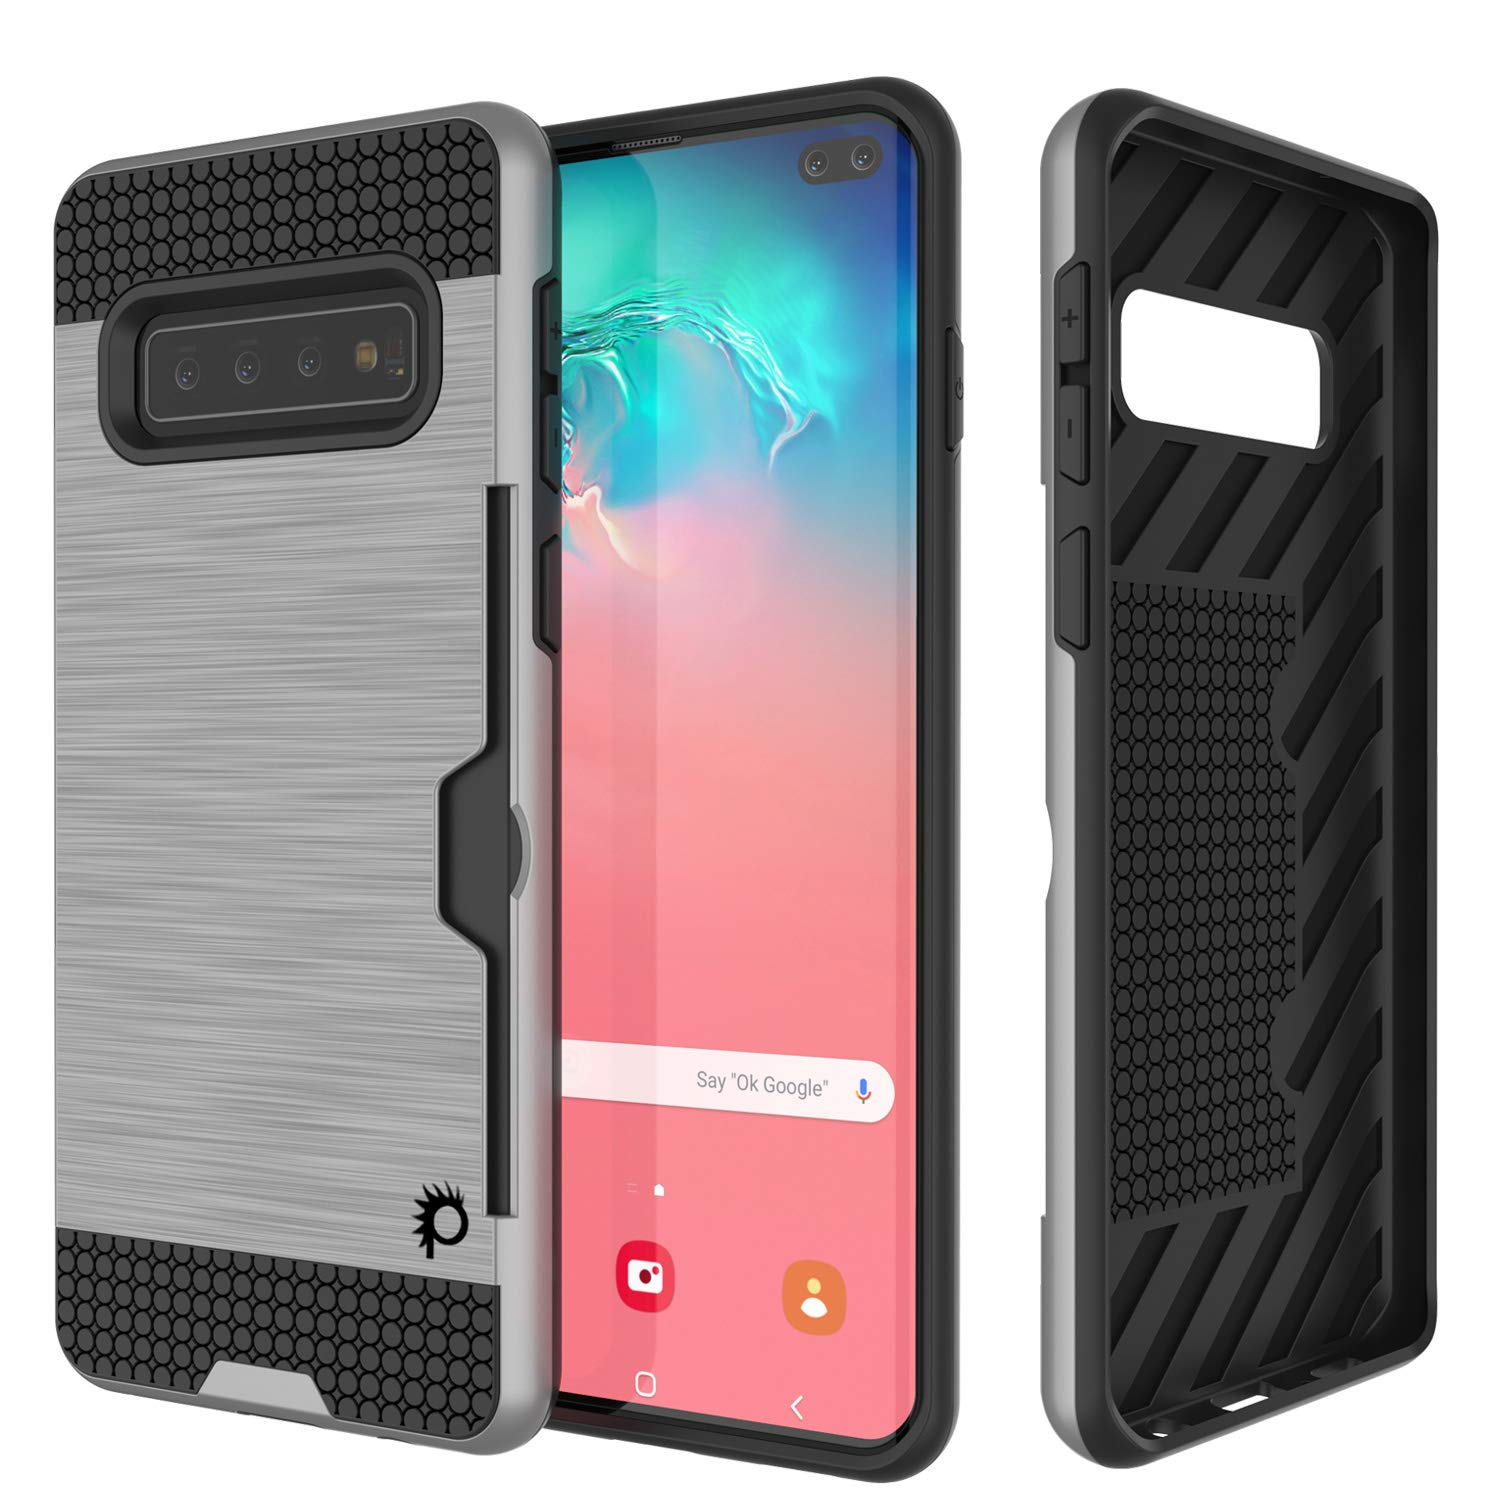 Galaxy S10 Case, PUNKcase [SLOT Series] [Slim Fit] Dual-Layer Armor Cover w/Integrated Anti-Shock System, Credit Card Slot [Silver]